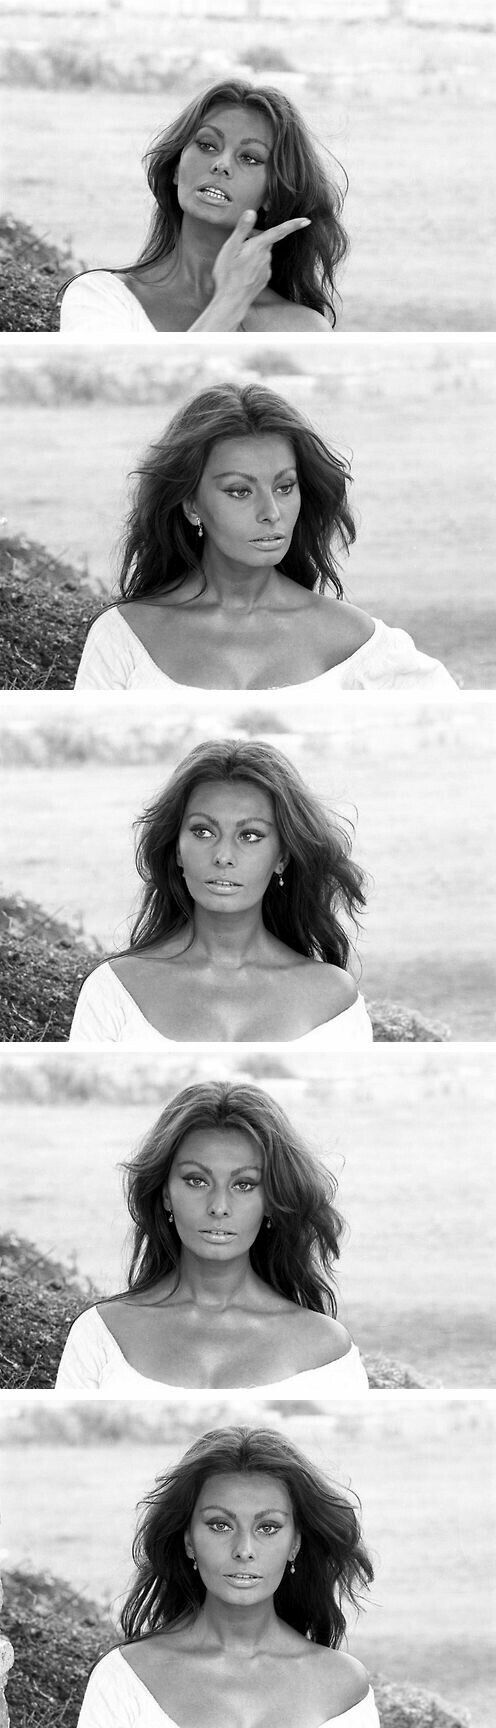 Sophia Loren No other woman can match the unrivaled matchless au nateral Beauty of Loren.